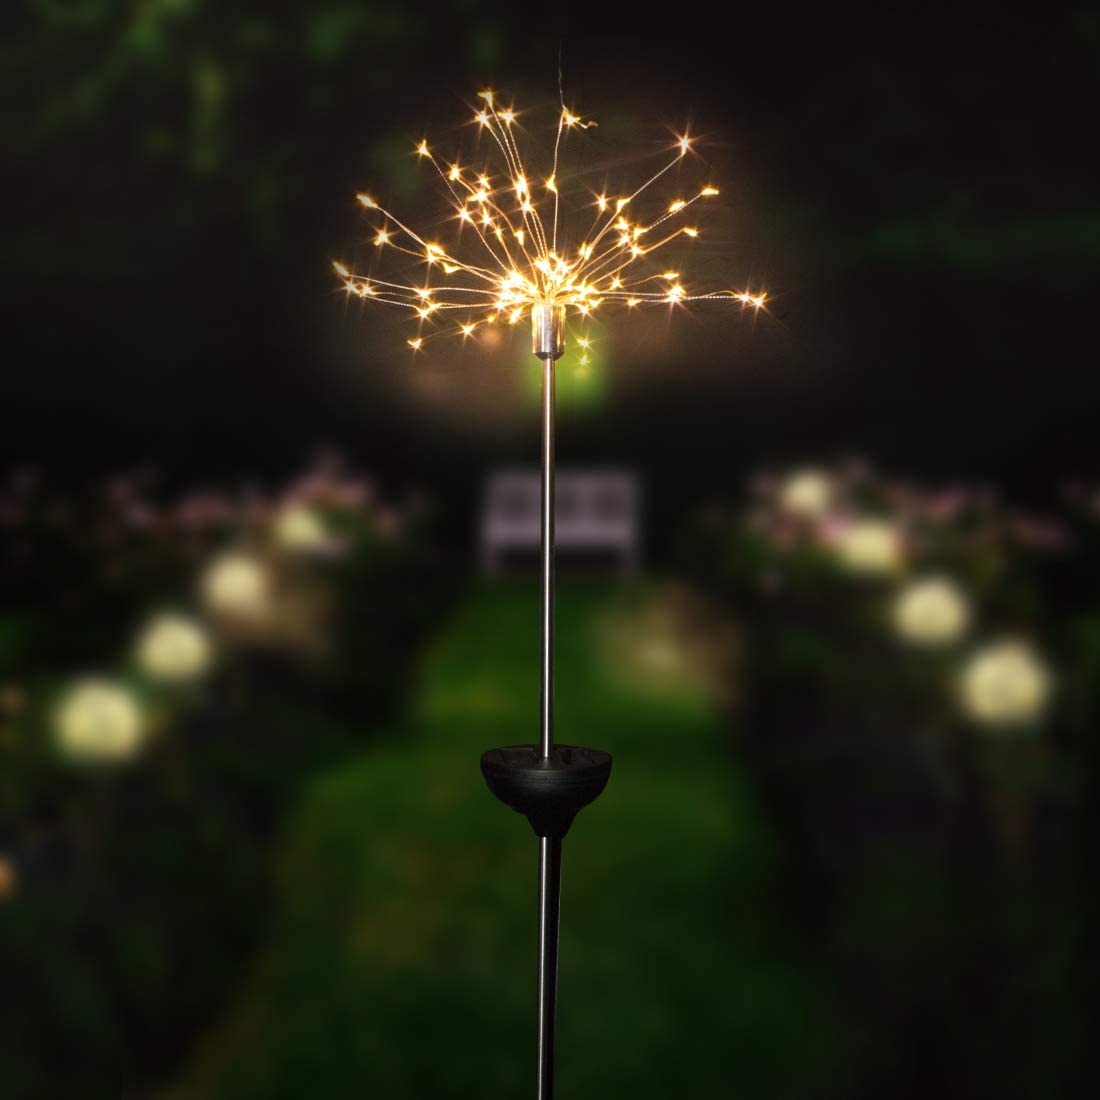 Solar Fireworks Light Outdoor LED String Lights8 Modes Starburst Lights Pathway Patio Lawn Backyard Christmas Party Holiday Wedding Decorative Lights 2 Packs (Warm White)